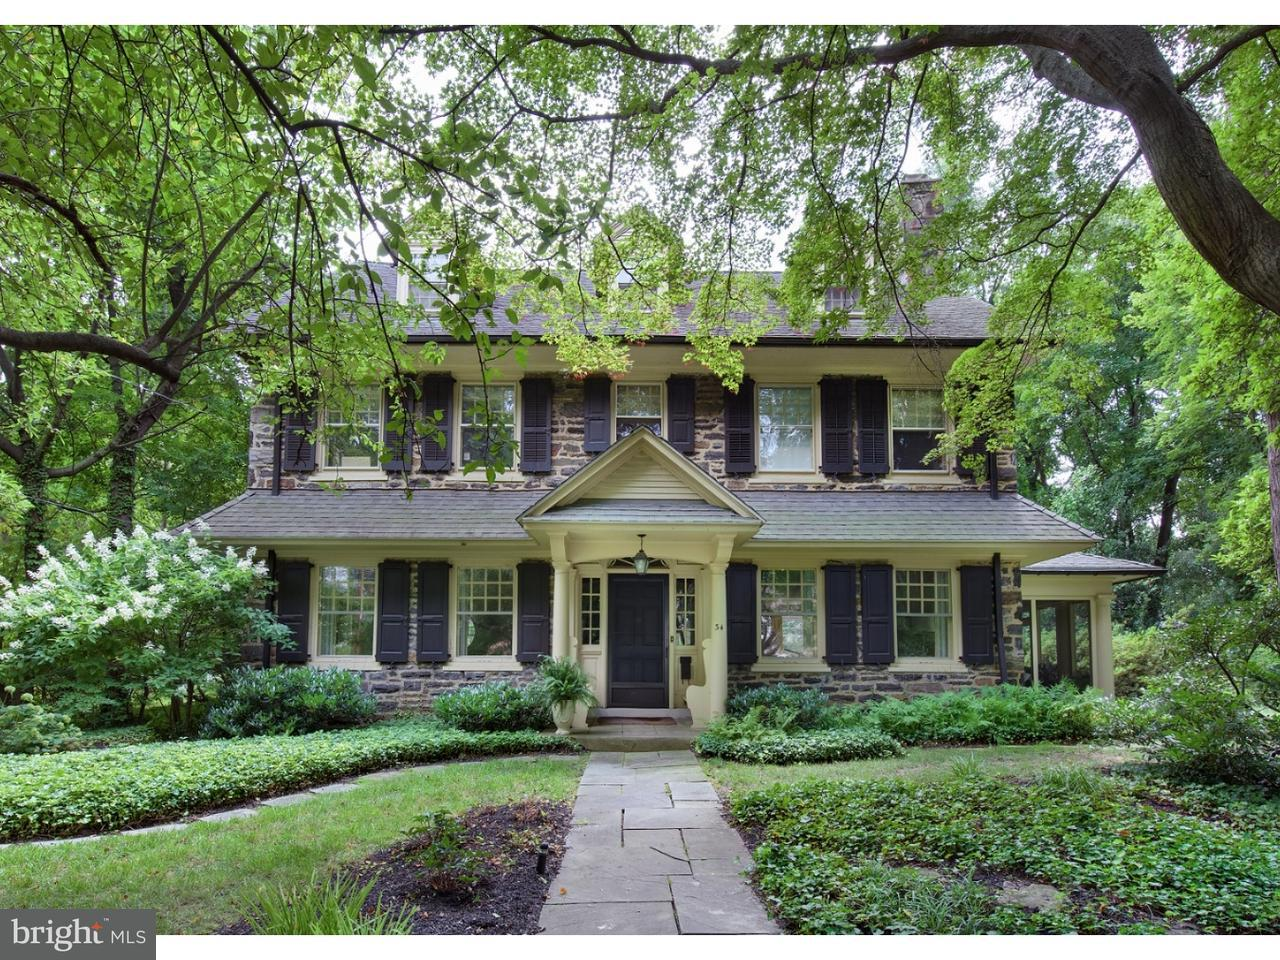 Single Family Home for Sale at 34 LLANBERRIS Road Bala Cynwyd, Pennsylvania 19004 United States